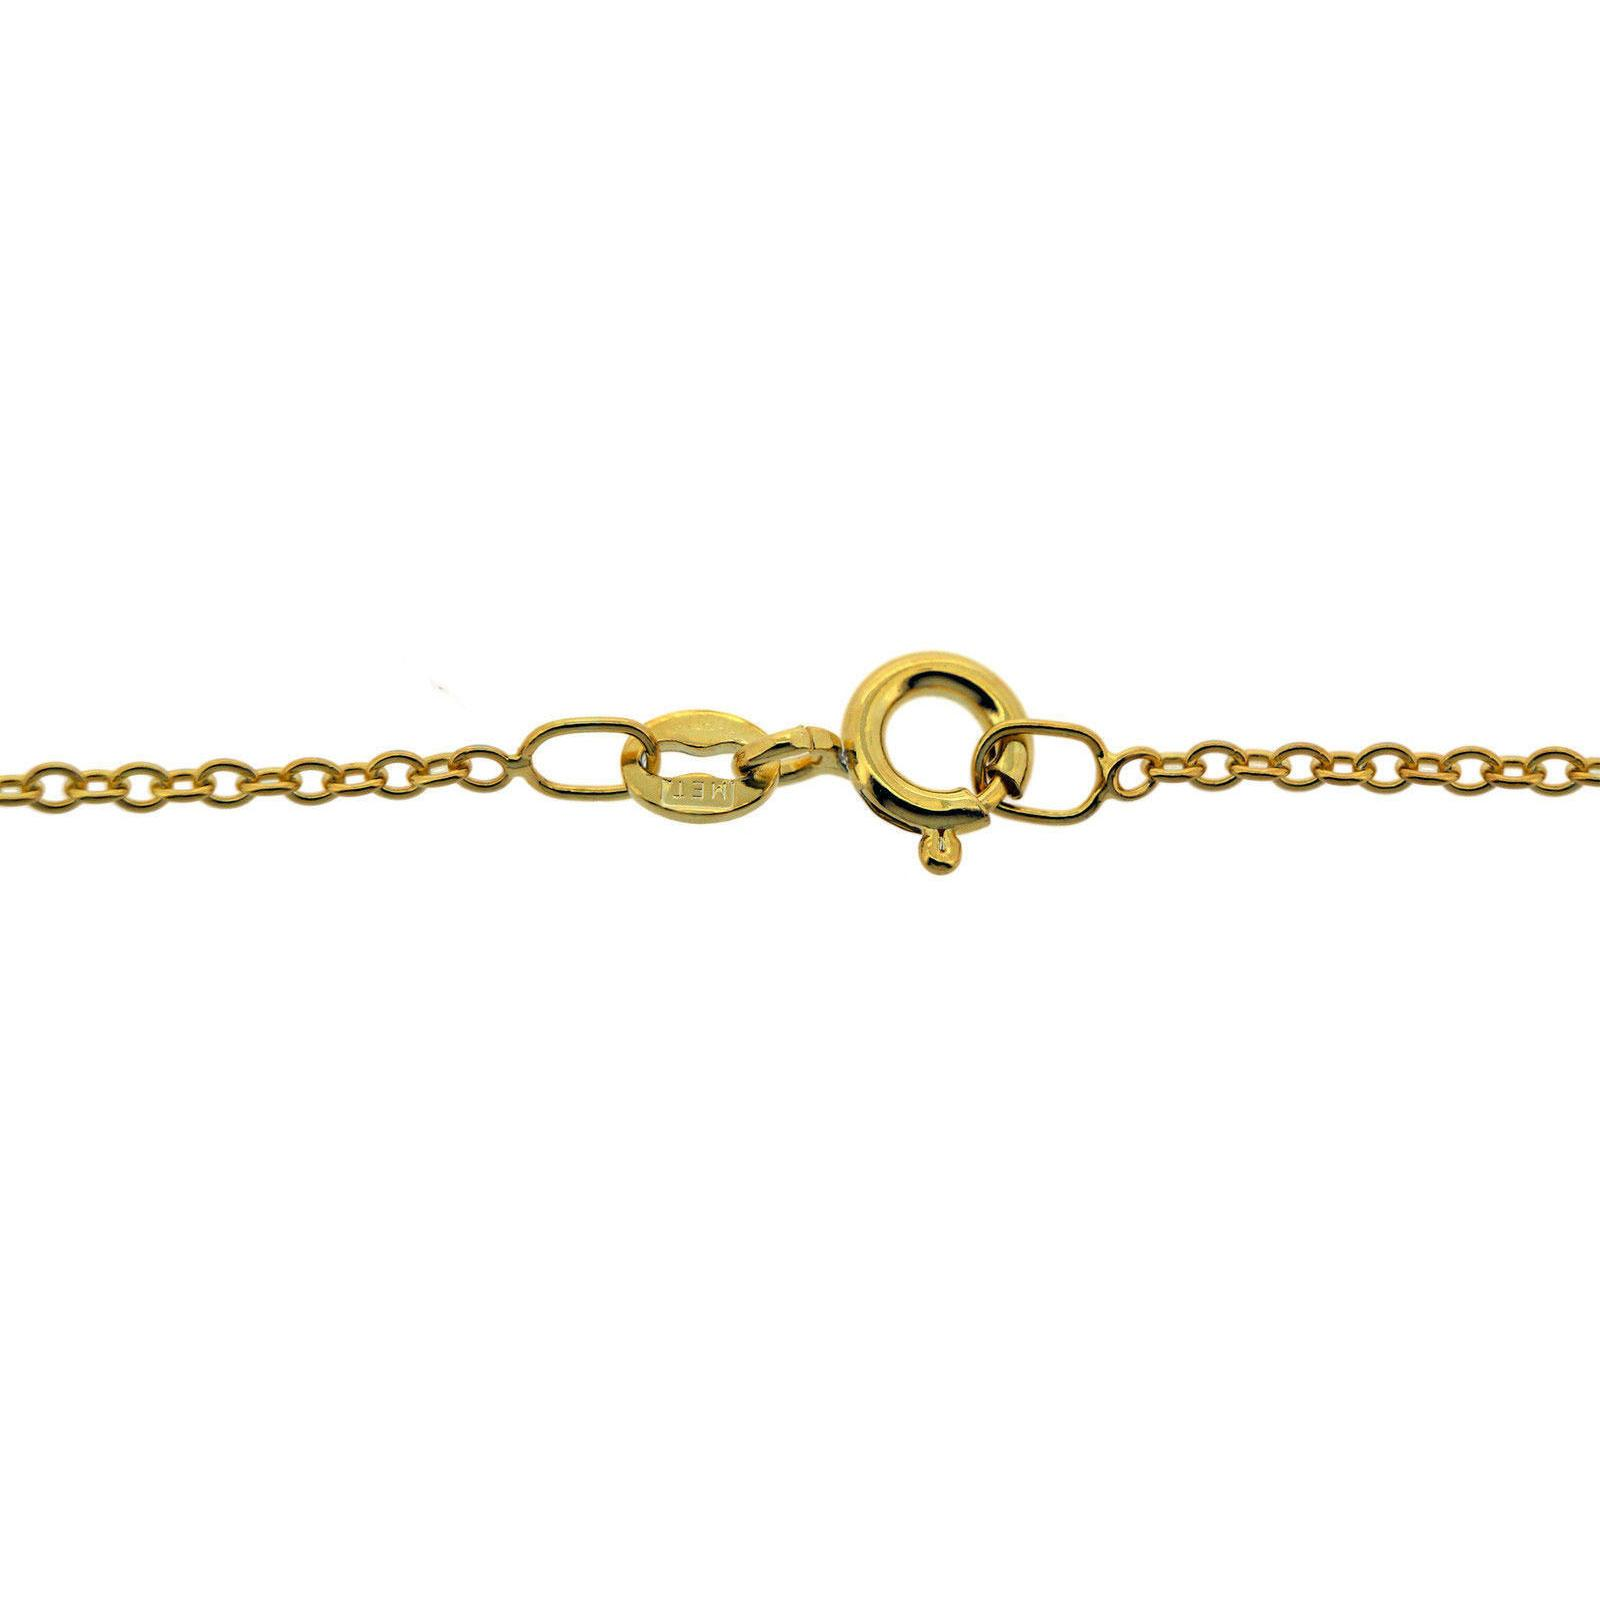 Italian made Organically E-coated 9ct Gold Plated 1.6mm Trace Chains